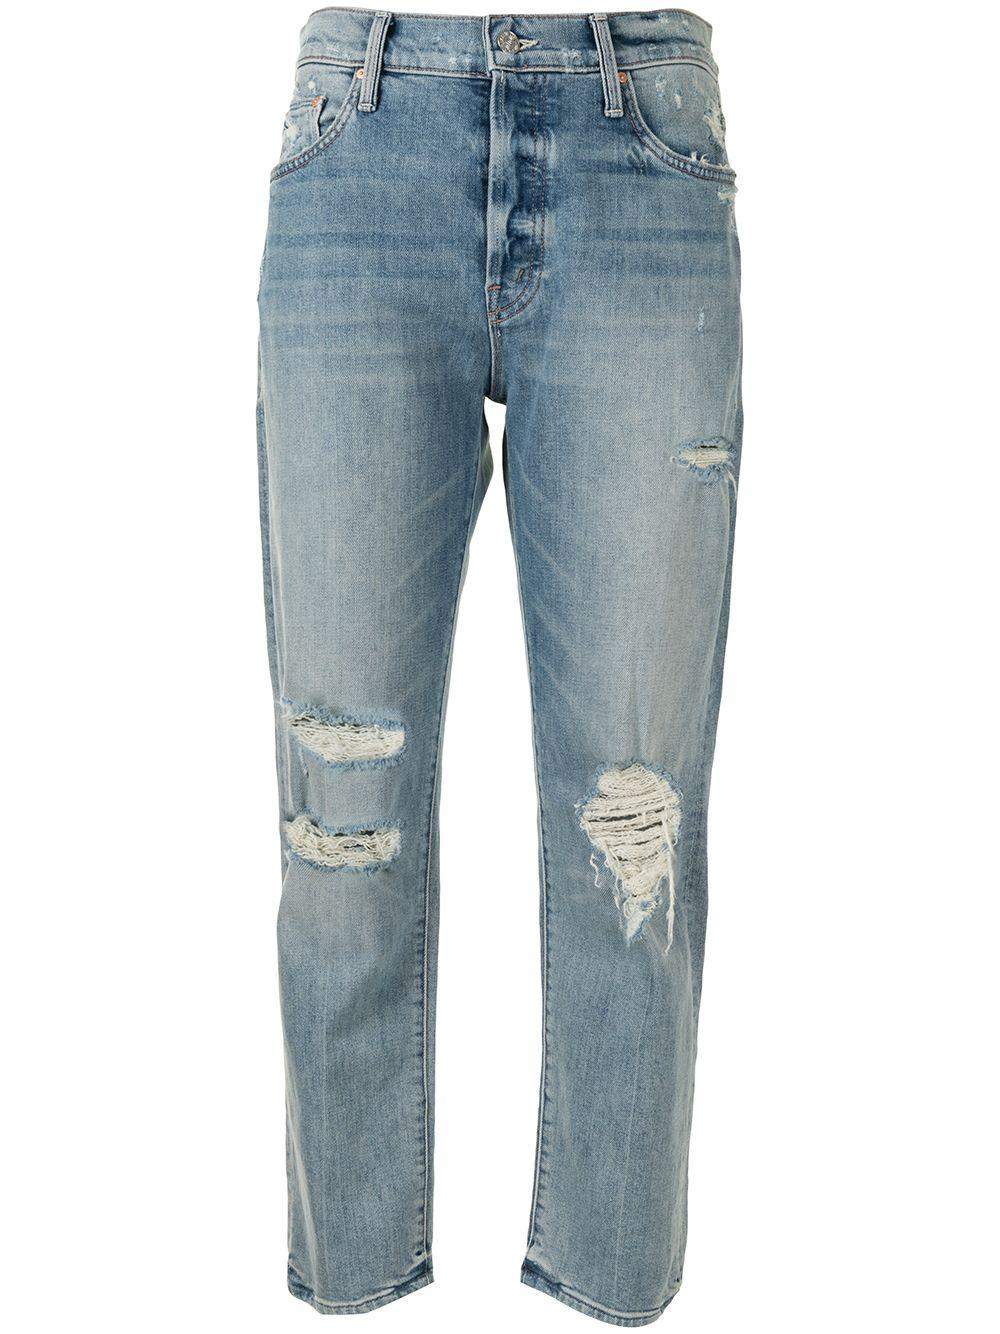 The Scrapper Ankle Jeans